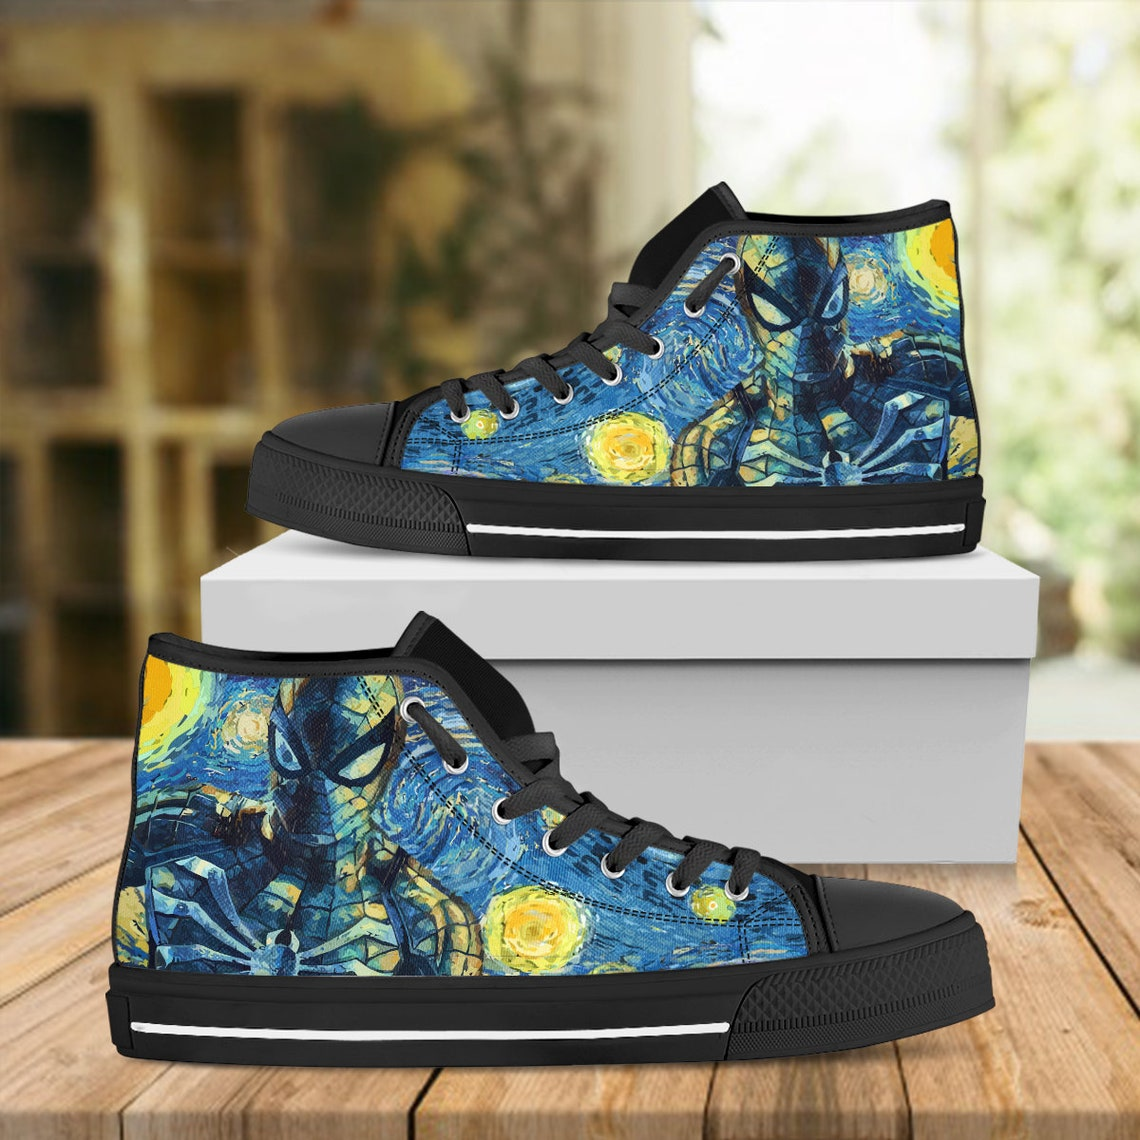 Spider Man Starry Night Shoes, Avengers Custom Shoes, Look Like Converse, Custom Shoes, Hi Tops, Inspired By Van Gogh